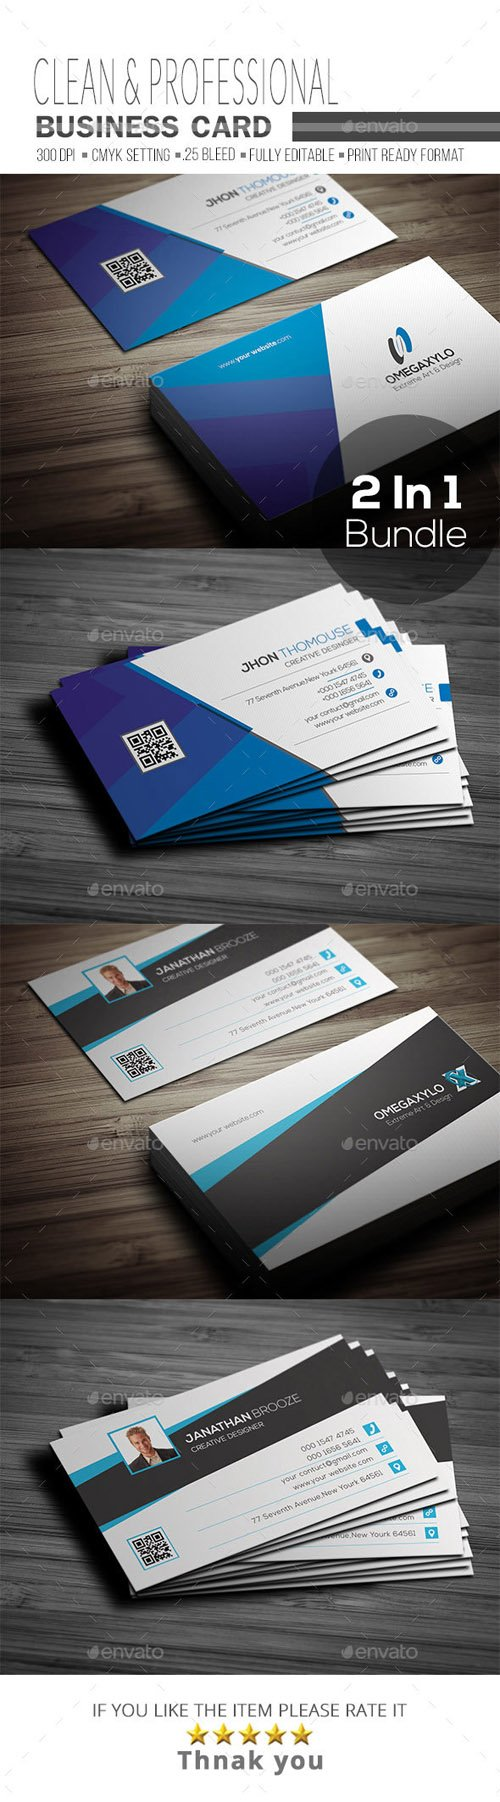 Business Card Bundle 2 In 1 19754850